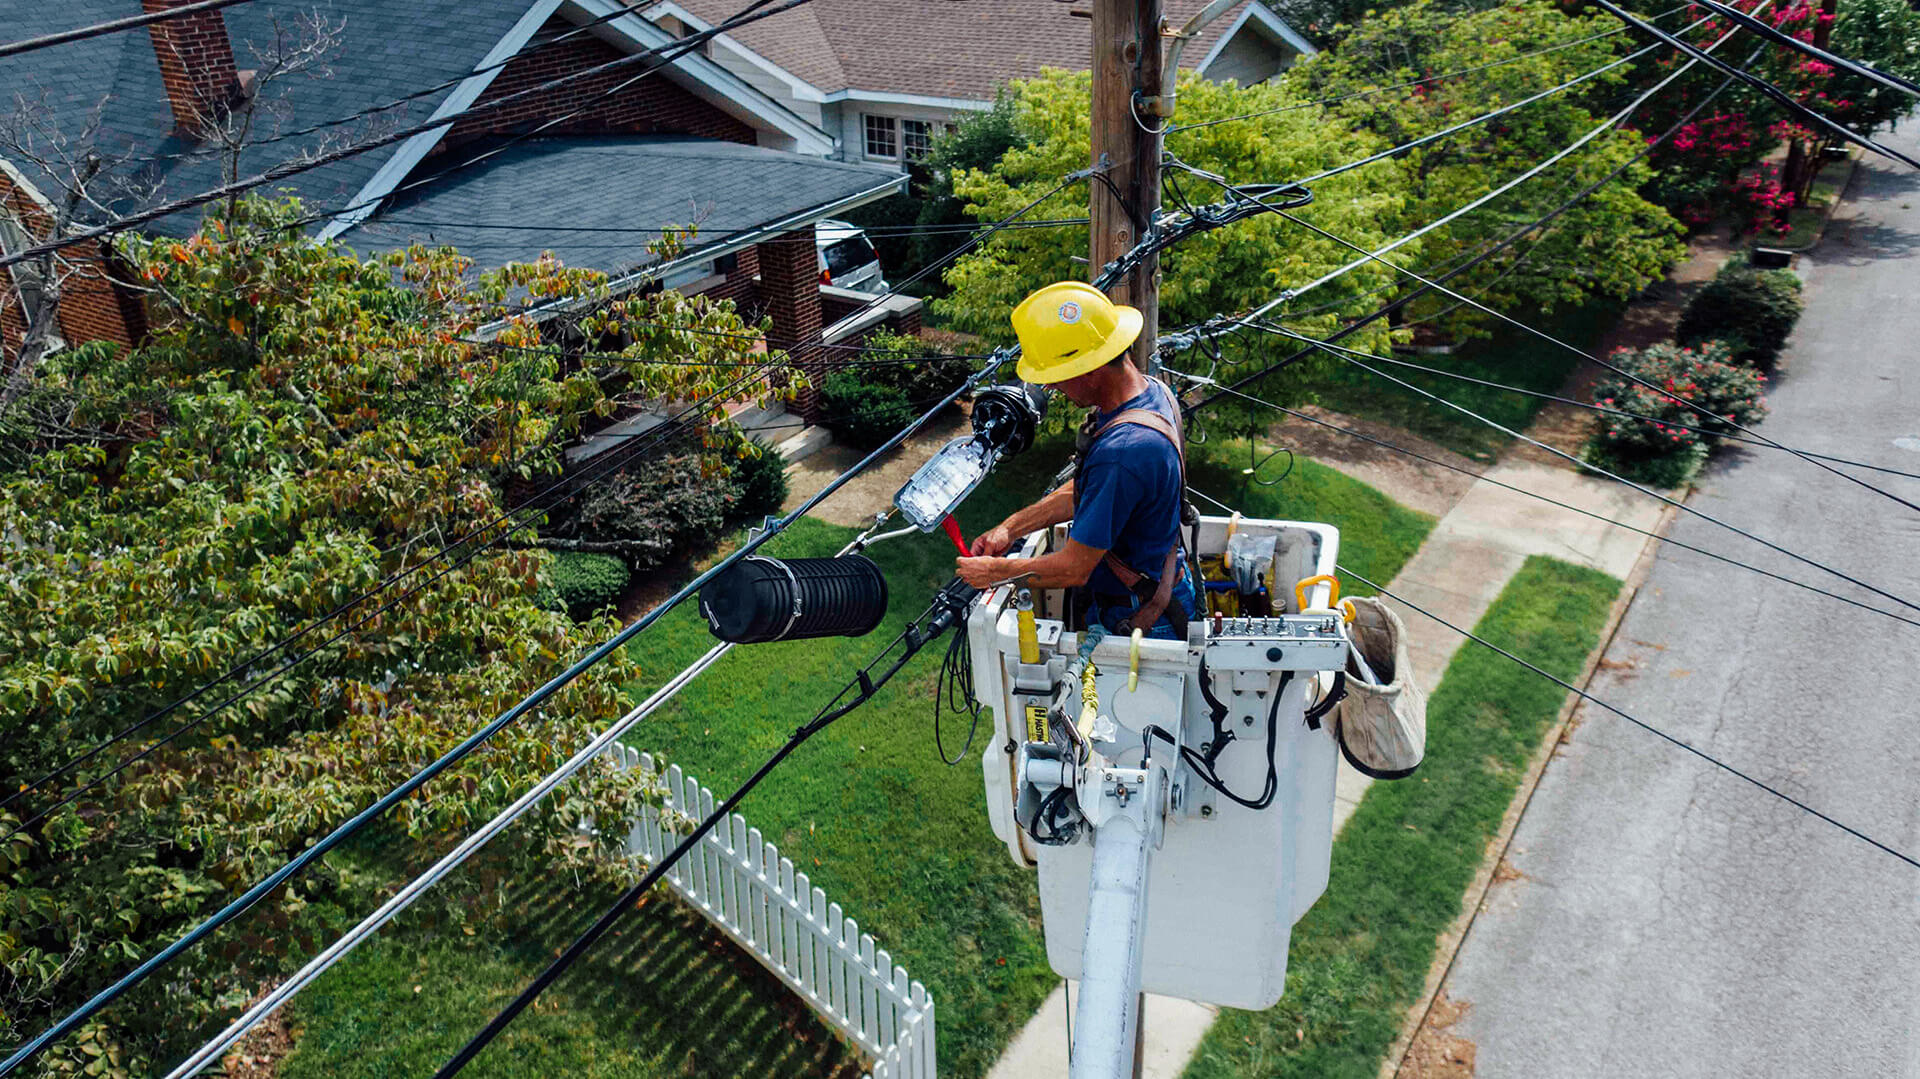 Hearing Loss and Damage Compensation among Electricians